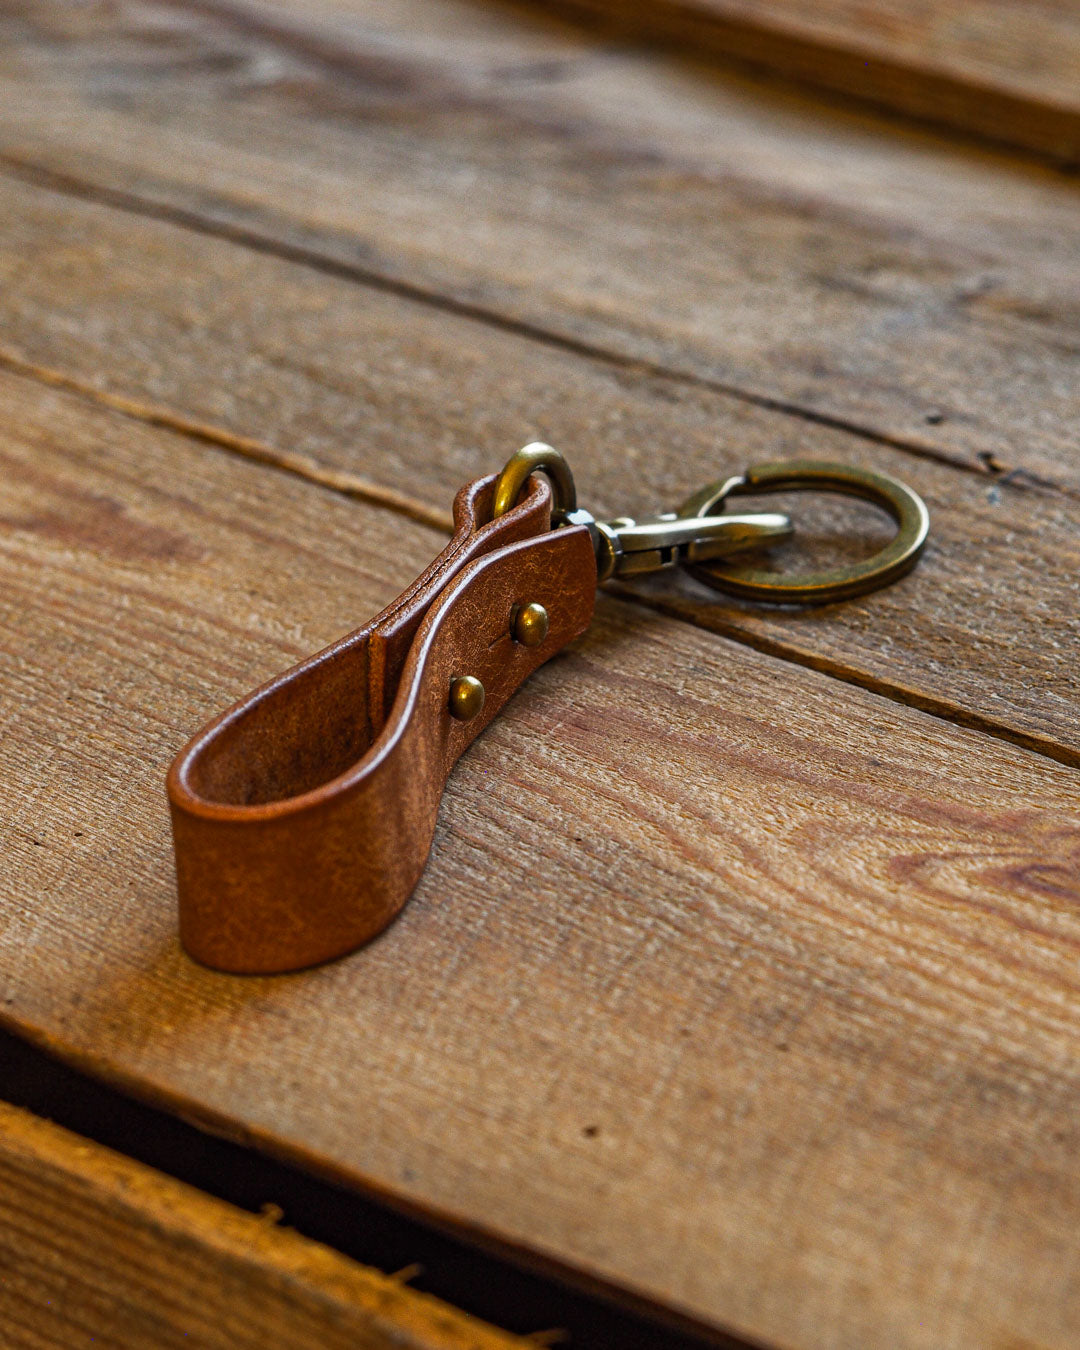 Luava handcrafted leather key fob double vegetable tanned keychain brass keyring clasp metal stud badalassi carlo pueblo leather handmade in finland cognac side